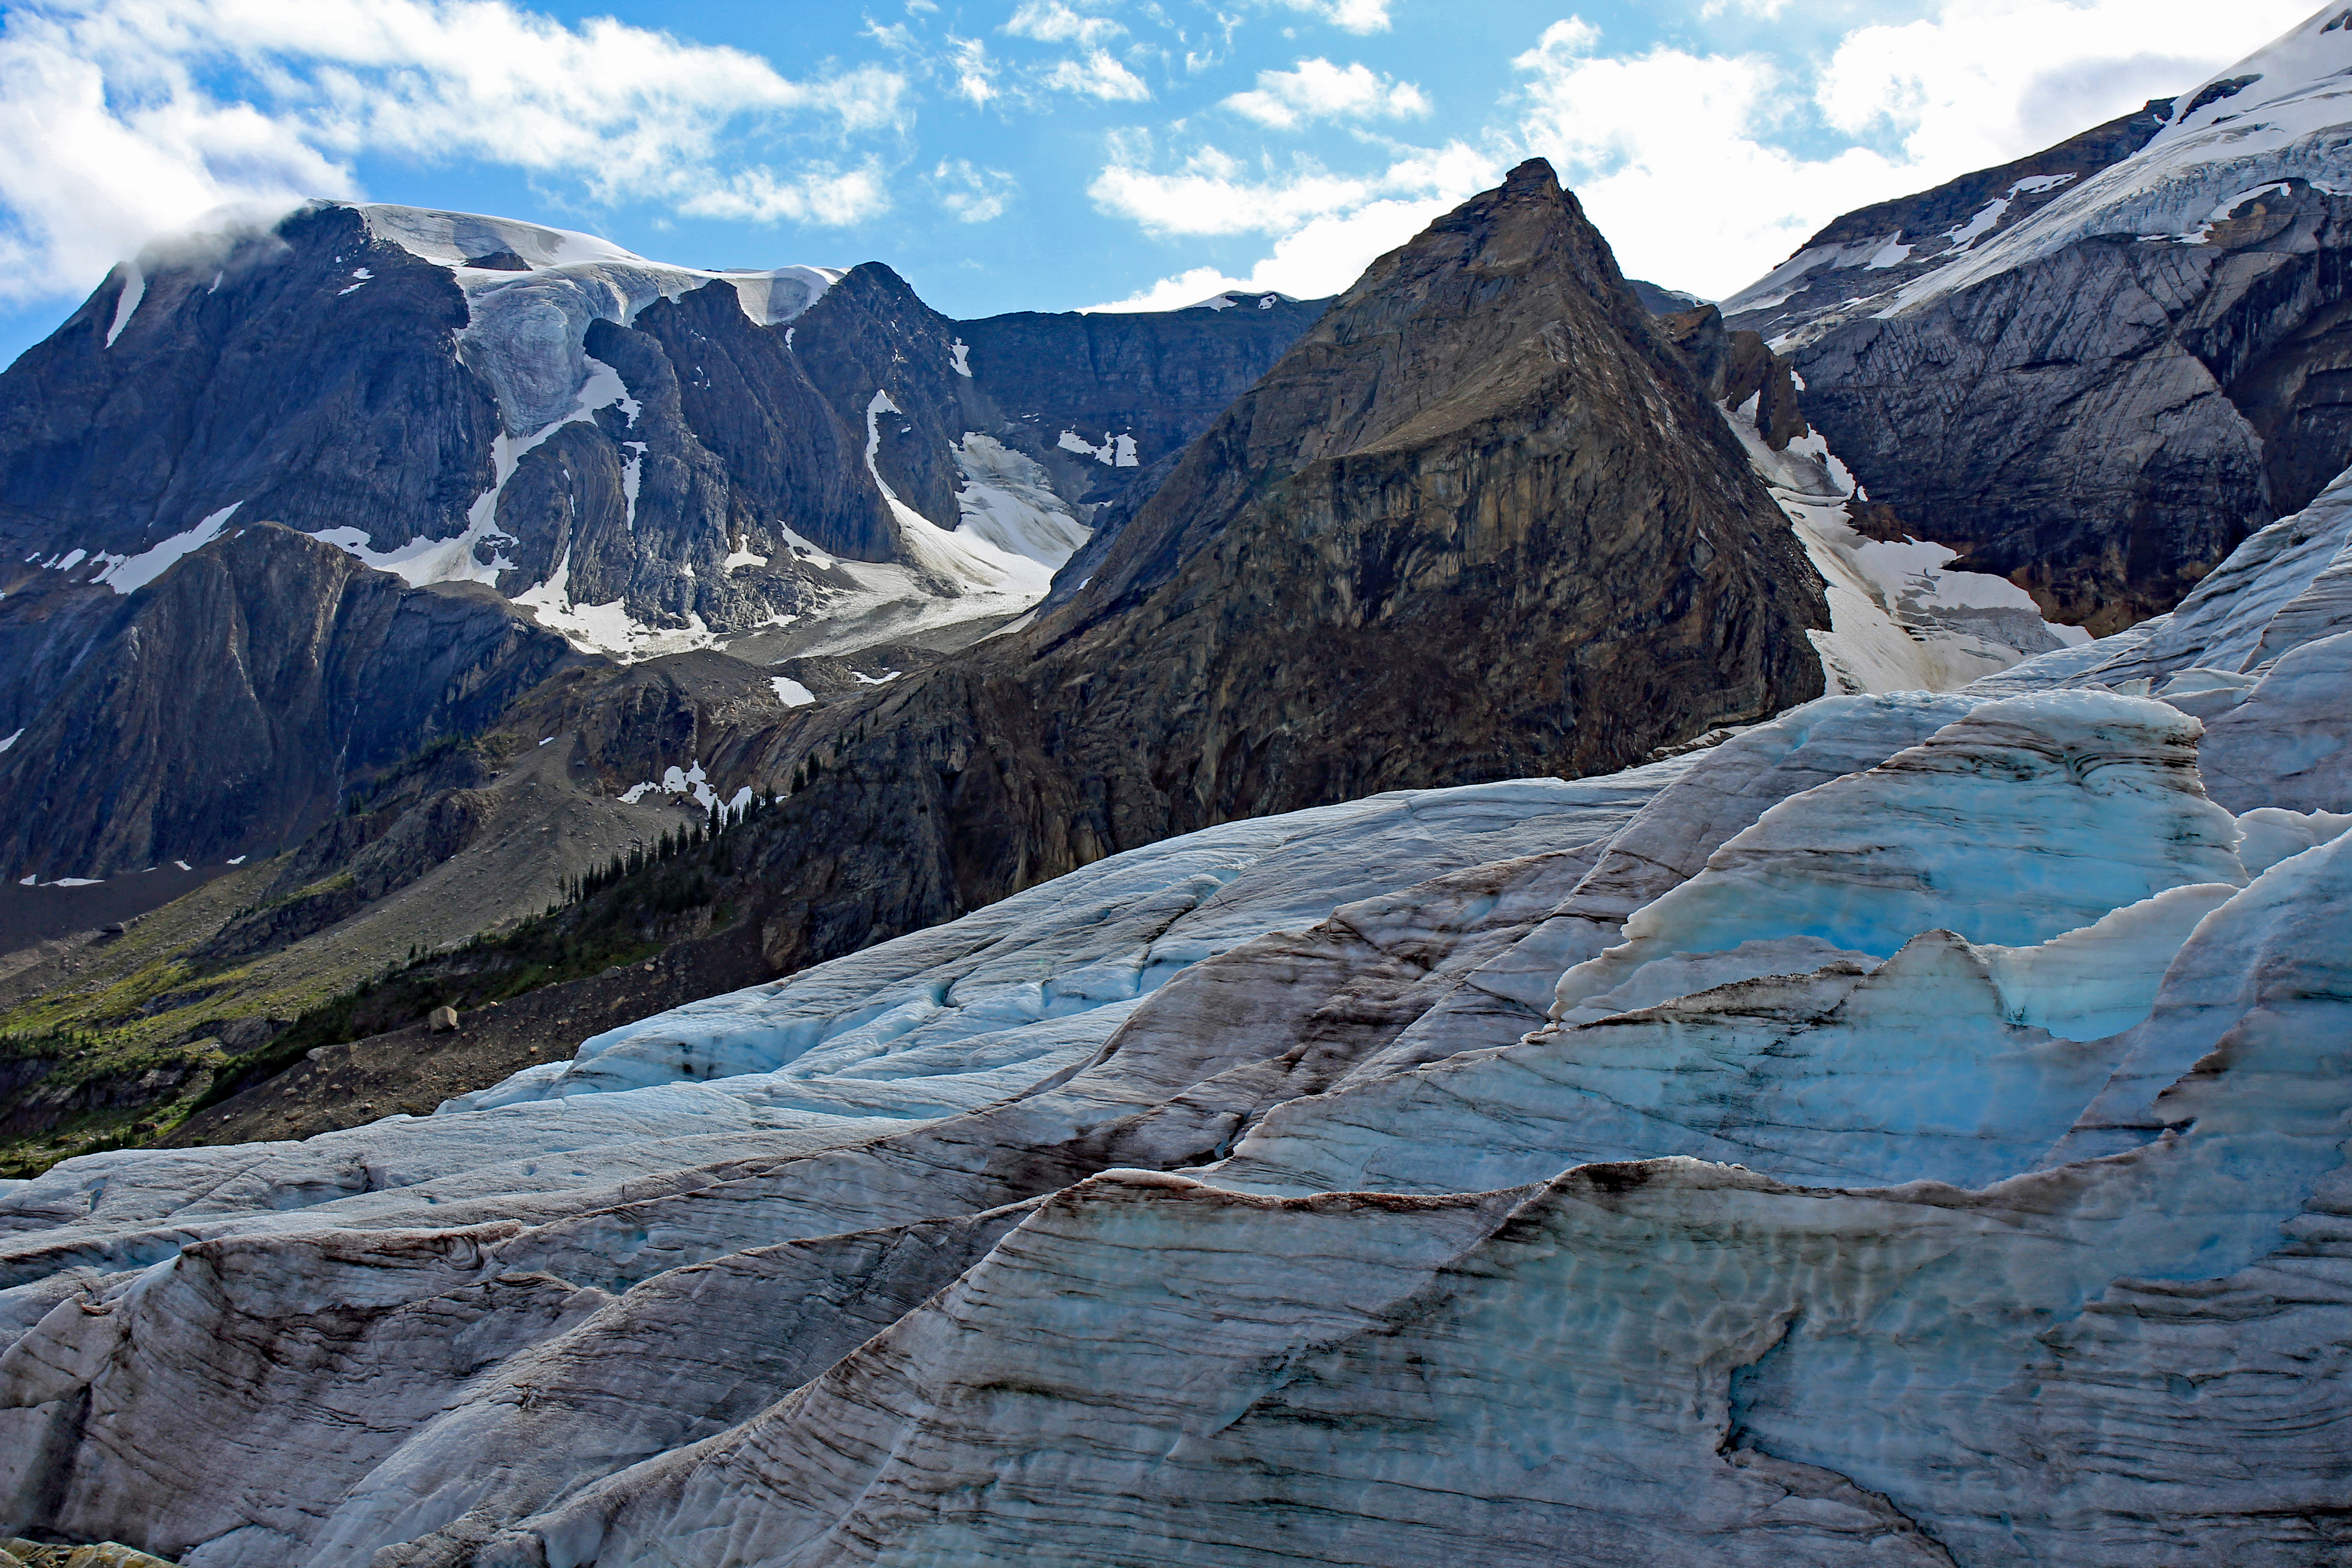 """<p>Mount Mummery Glacier Trail near Golden. BC</p><p class=""""lightbox-share""""><span>Share: </span><a class=""""lightbox-fb"""" href=""""javascript:void(0);"""">Facebook</a><a class=""""lightbox-twit"""" href=""""https://twitter.com/home?status=I%20voted%20for%20WINNER!%20Mummery%20Glacier%20in%20the%20Cornice%20Calendar%20Contest.%20Choose%20your%20favourite%206%20photos:%20http://ow.ly/yCSmZ"""" target=""""_blank"""">Twitter</a></p><input type=hidden class=voteid value=1914 />"""